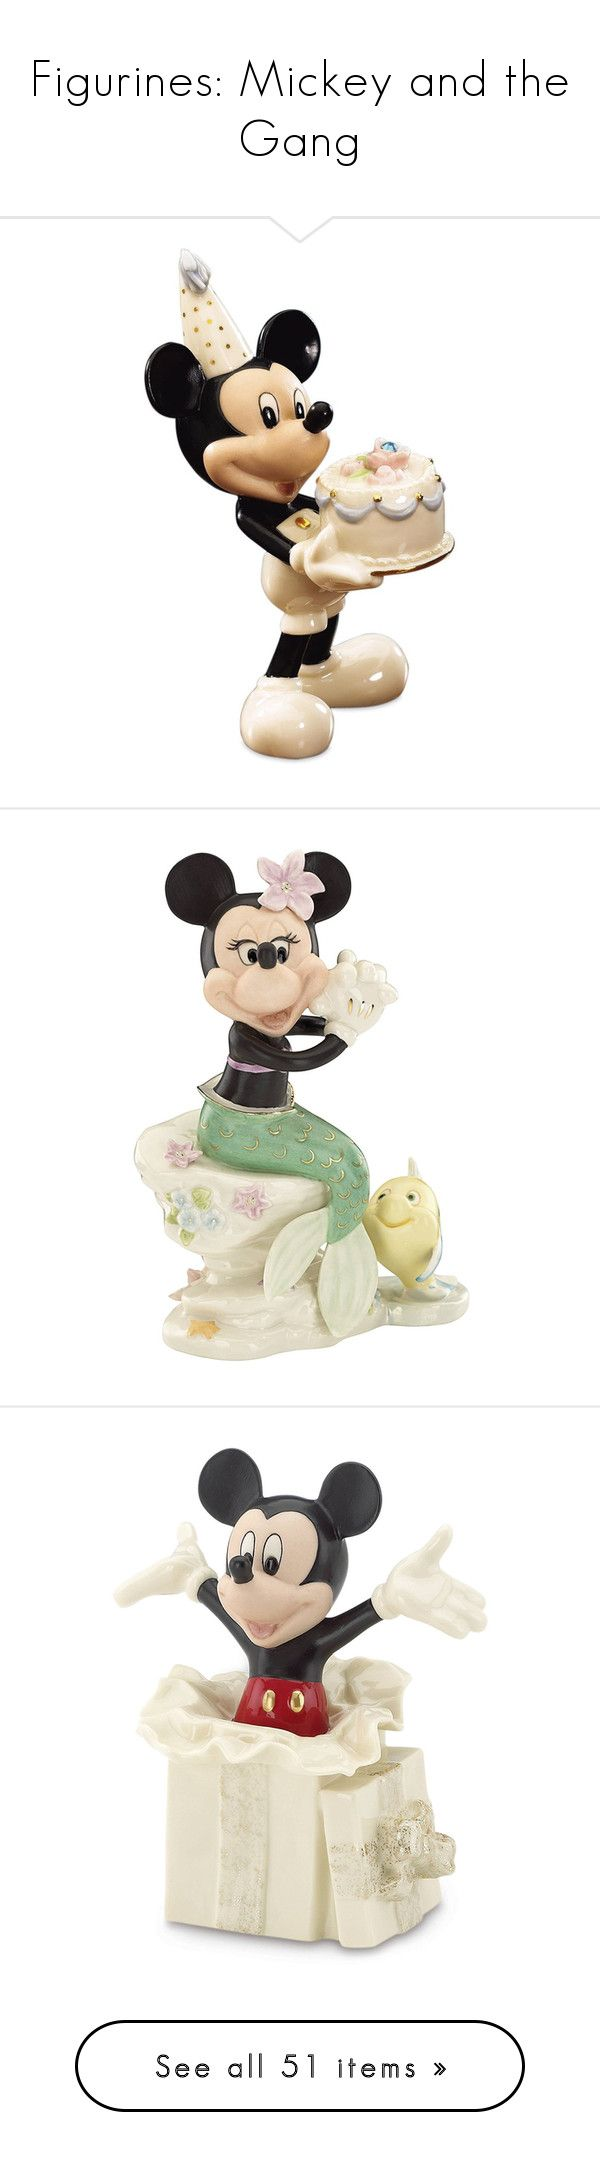 """Figurines: Mickey and the Gang"" by elli951 ❤ liked on Polyvore featuring home, home decor, disney figure, mermaid home decor, disney figurines, mermaid figurines, disney home decor, ivory, ivory sculpture and gold home accessories"